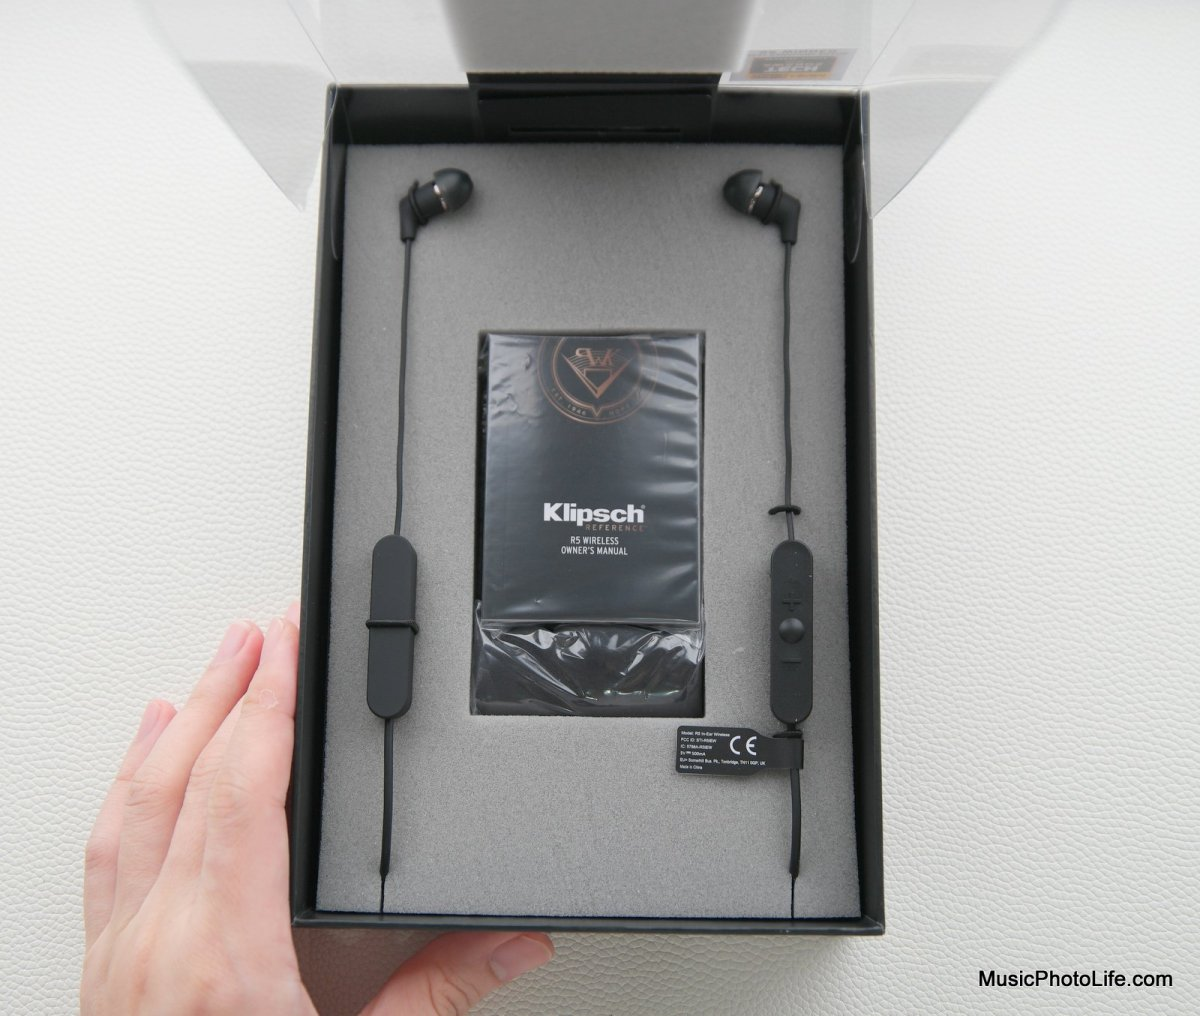 Klipsch R5 Wireless Review: Signature Klipsch Sound for Active Lifestyle